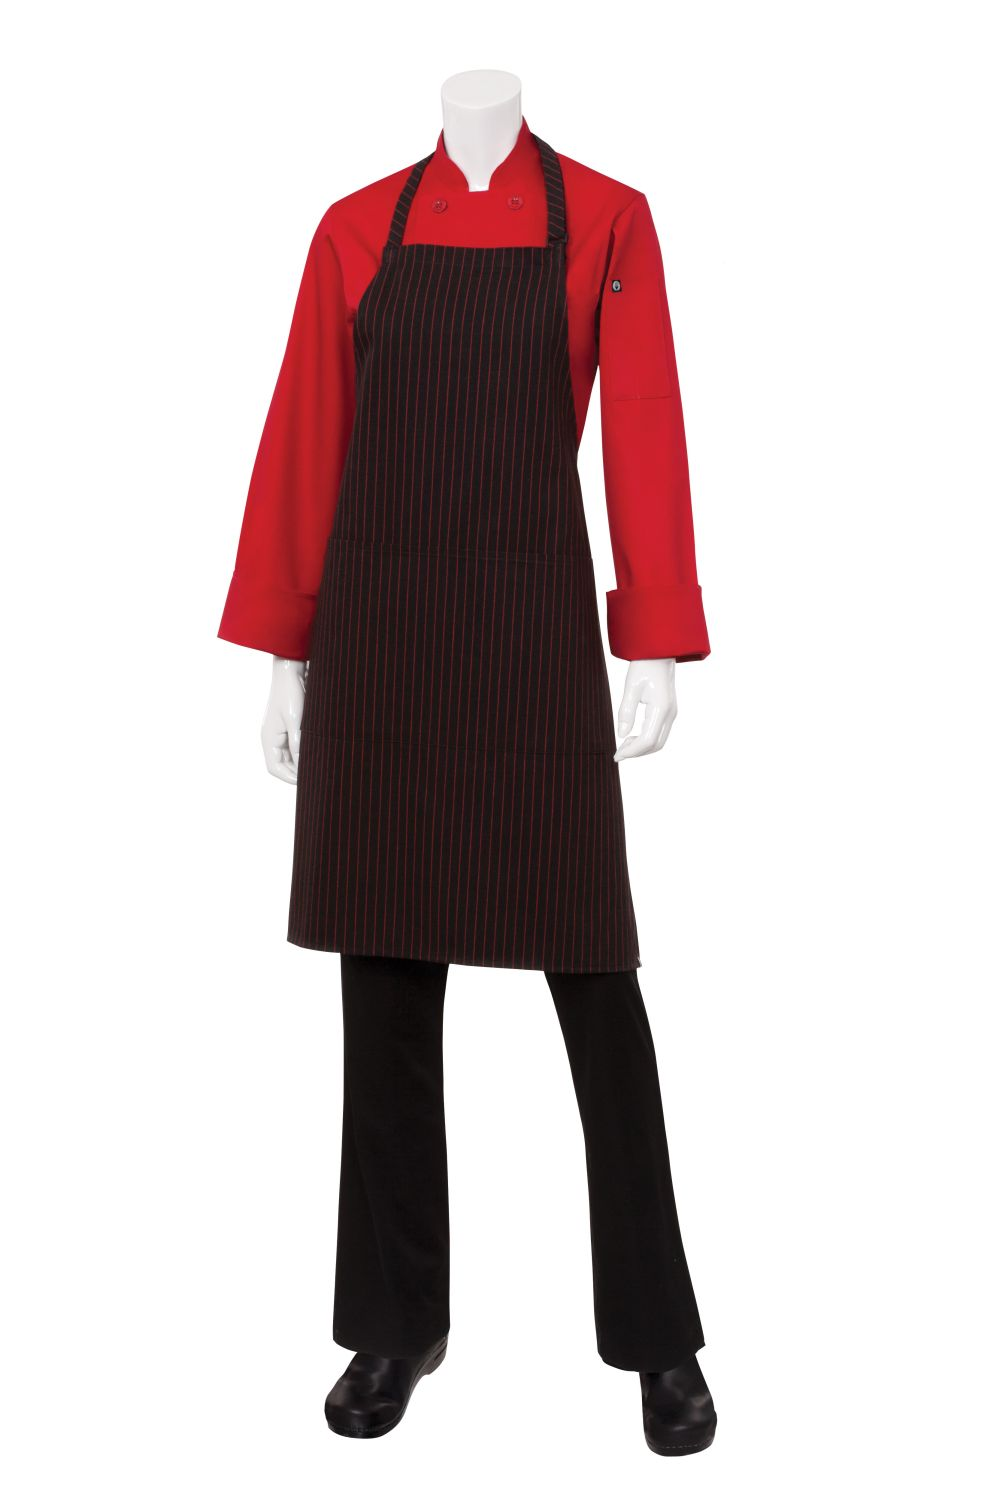 Red Pin Striped Bib Apron